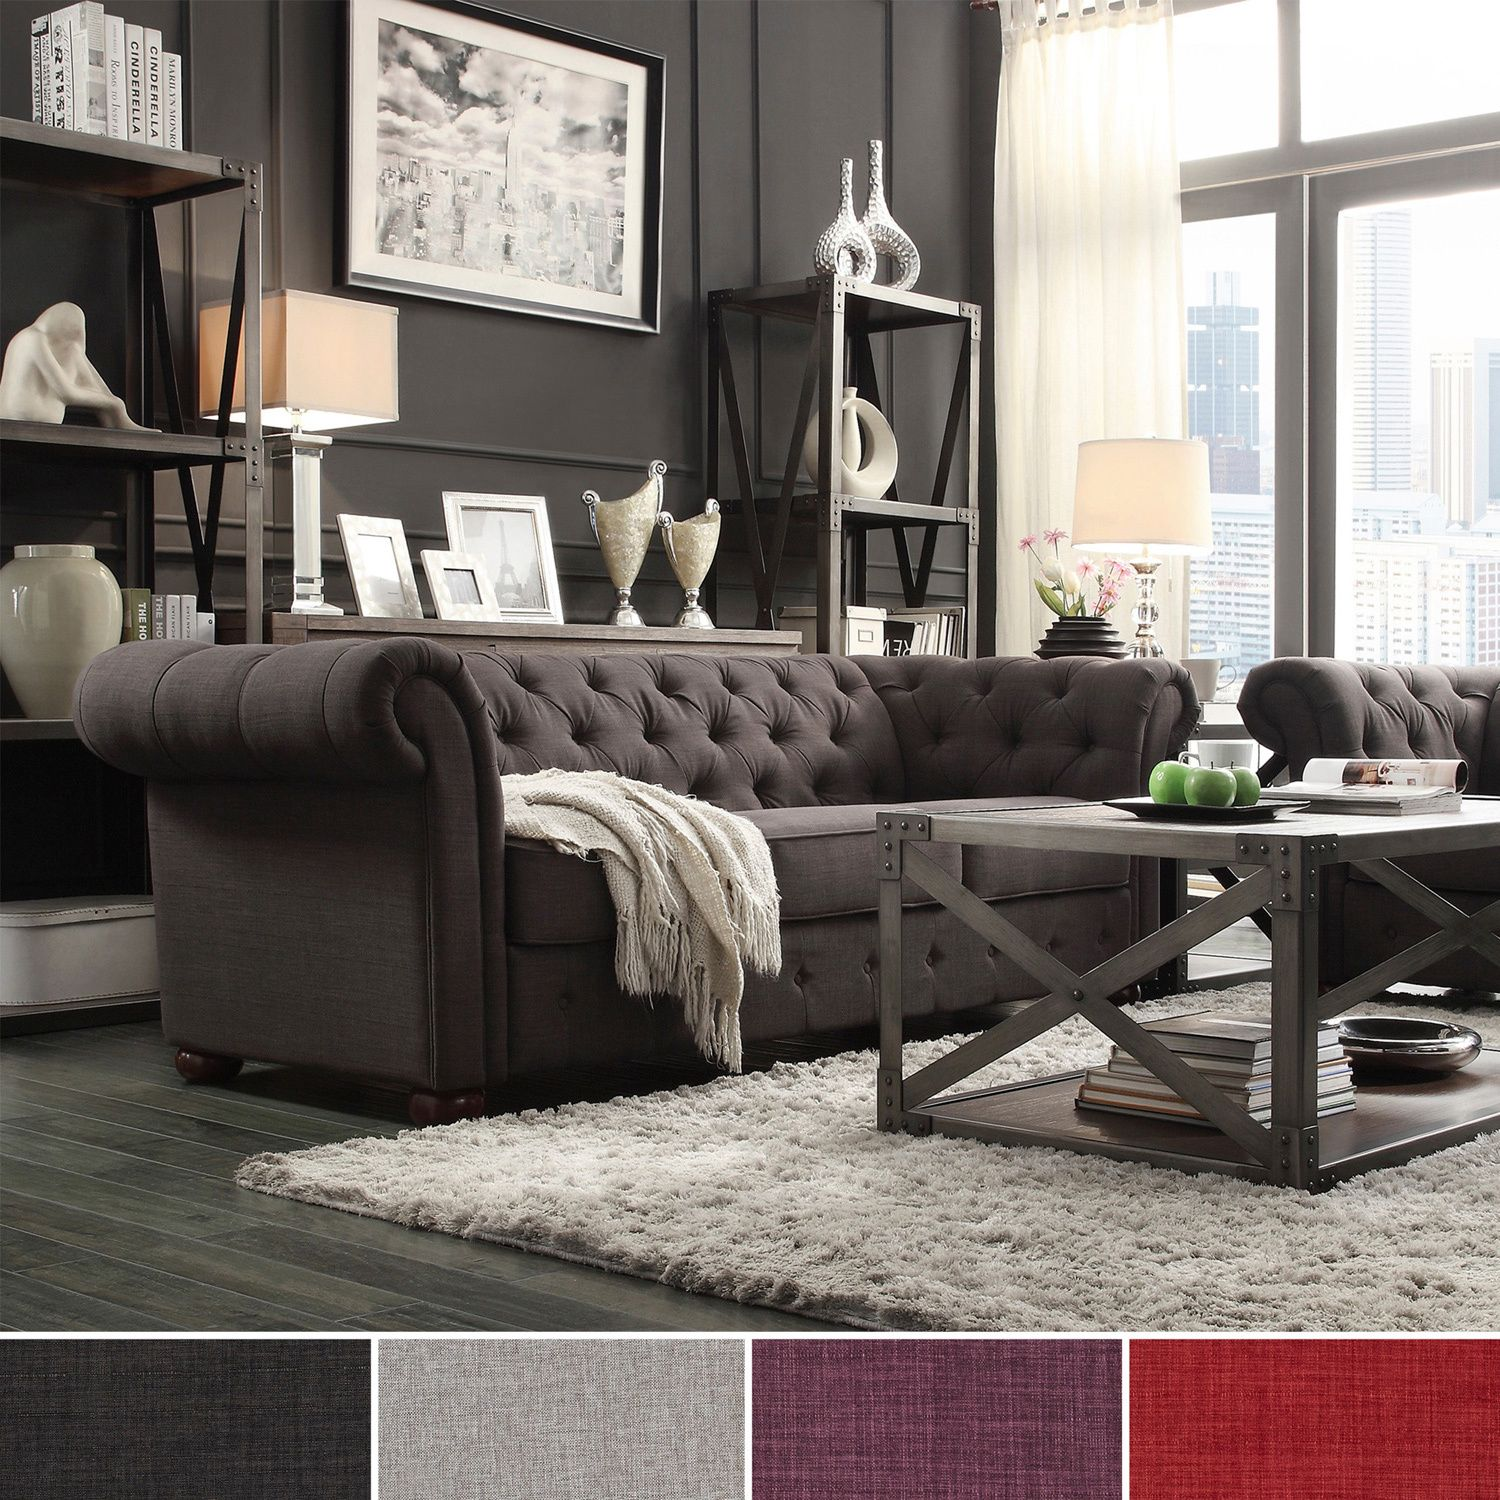 In Red Add Graceful Seating To You Home With This Chesterfield Sofa By Tribecca Home